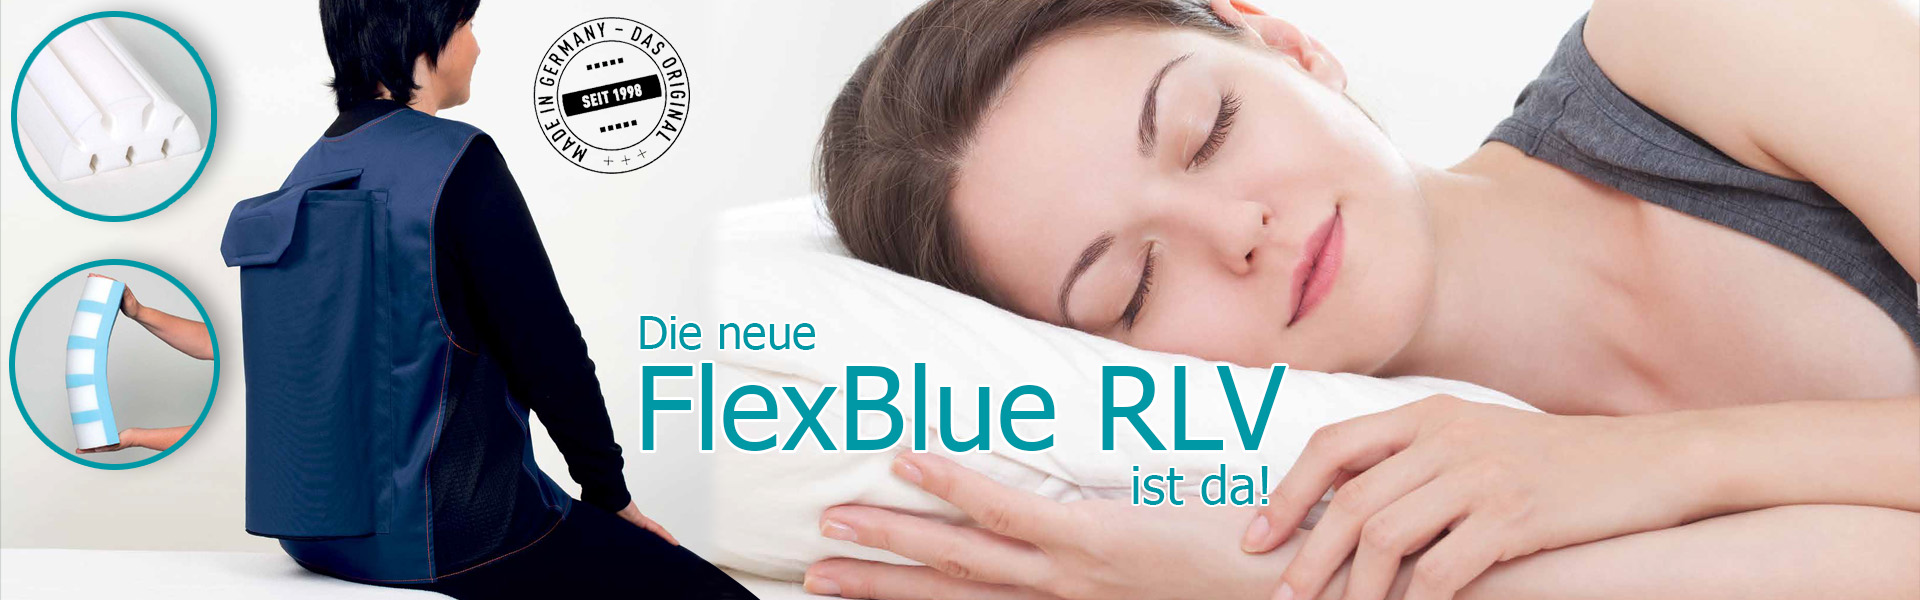 RLV Flex Blue